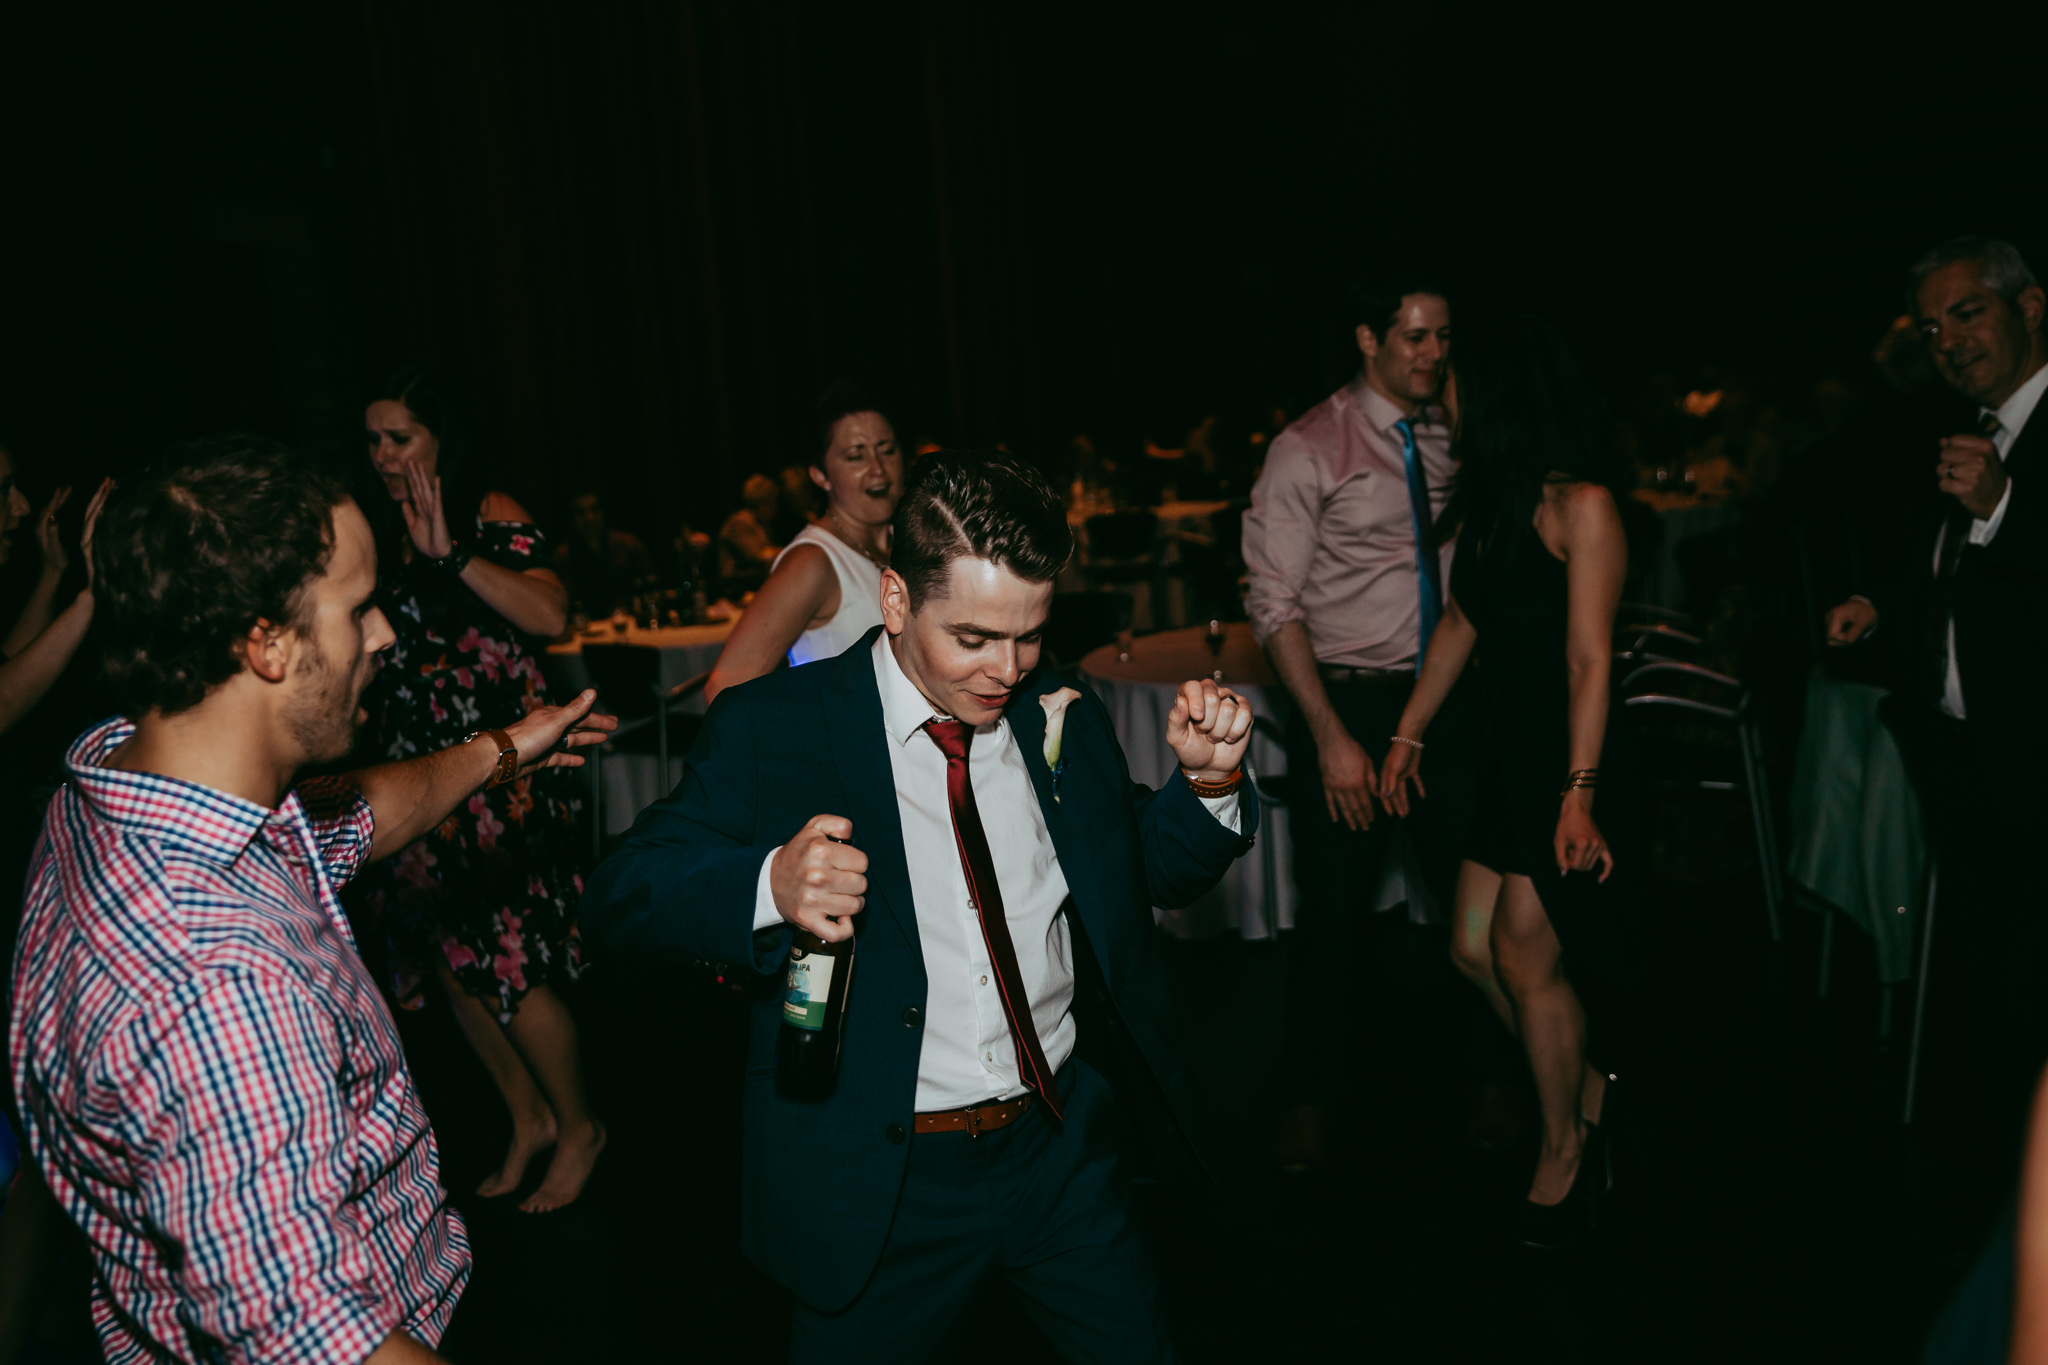 mollystevewedding-4771_September 30, 2017.jpg